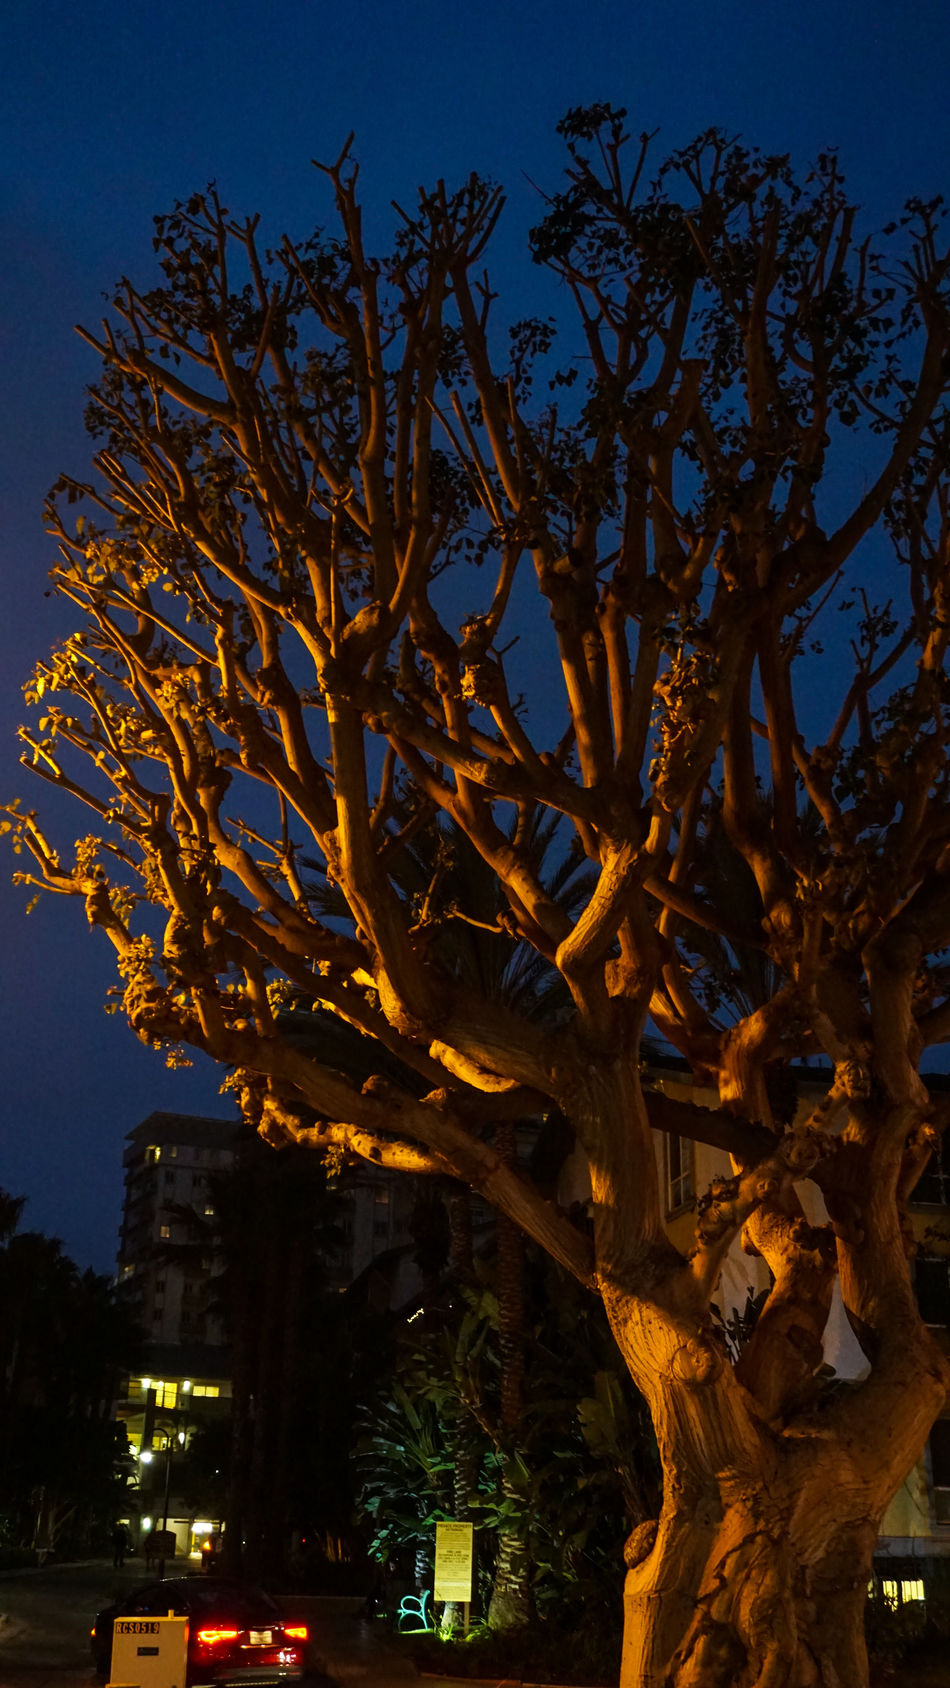 Cityscape Night Outdoors Tree No People Illuminated Perspective Randomshot Photography Eyemphotography Random Acts Of Photography SonyAlpha6000 Beauty In Nature Nature Abstract Art Justmessingaround Eye4photography  Abstract Photography EyeEmBestPics Backgrounds Sky City Sunset Vacations